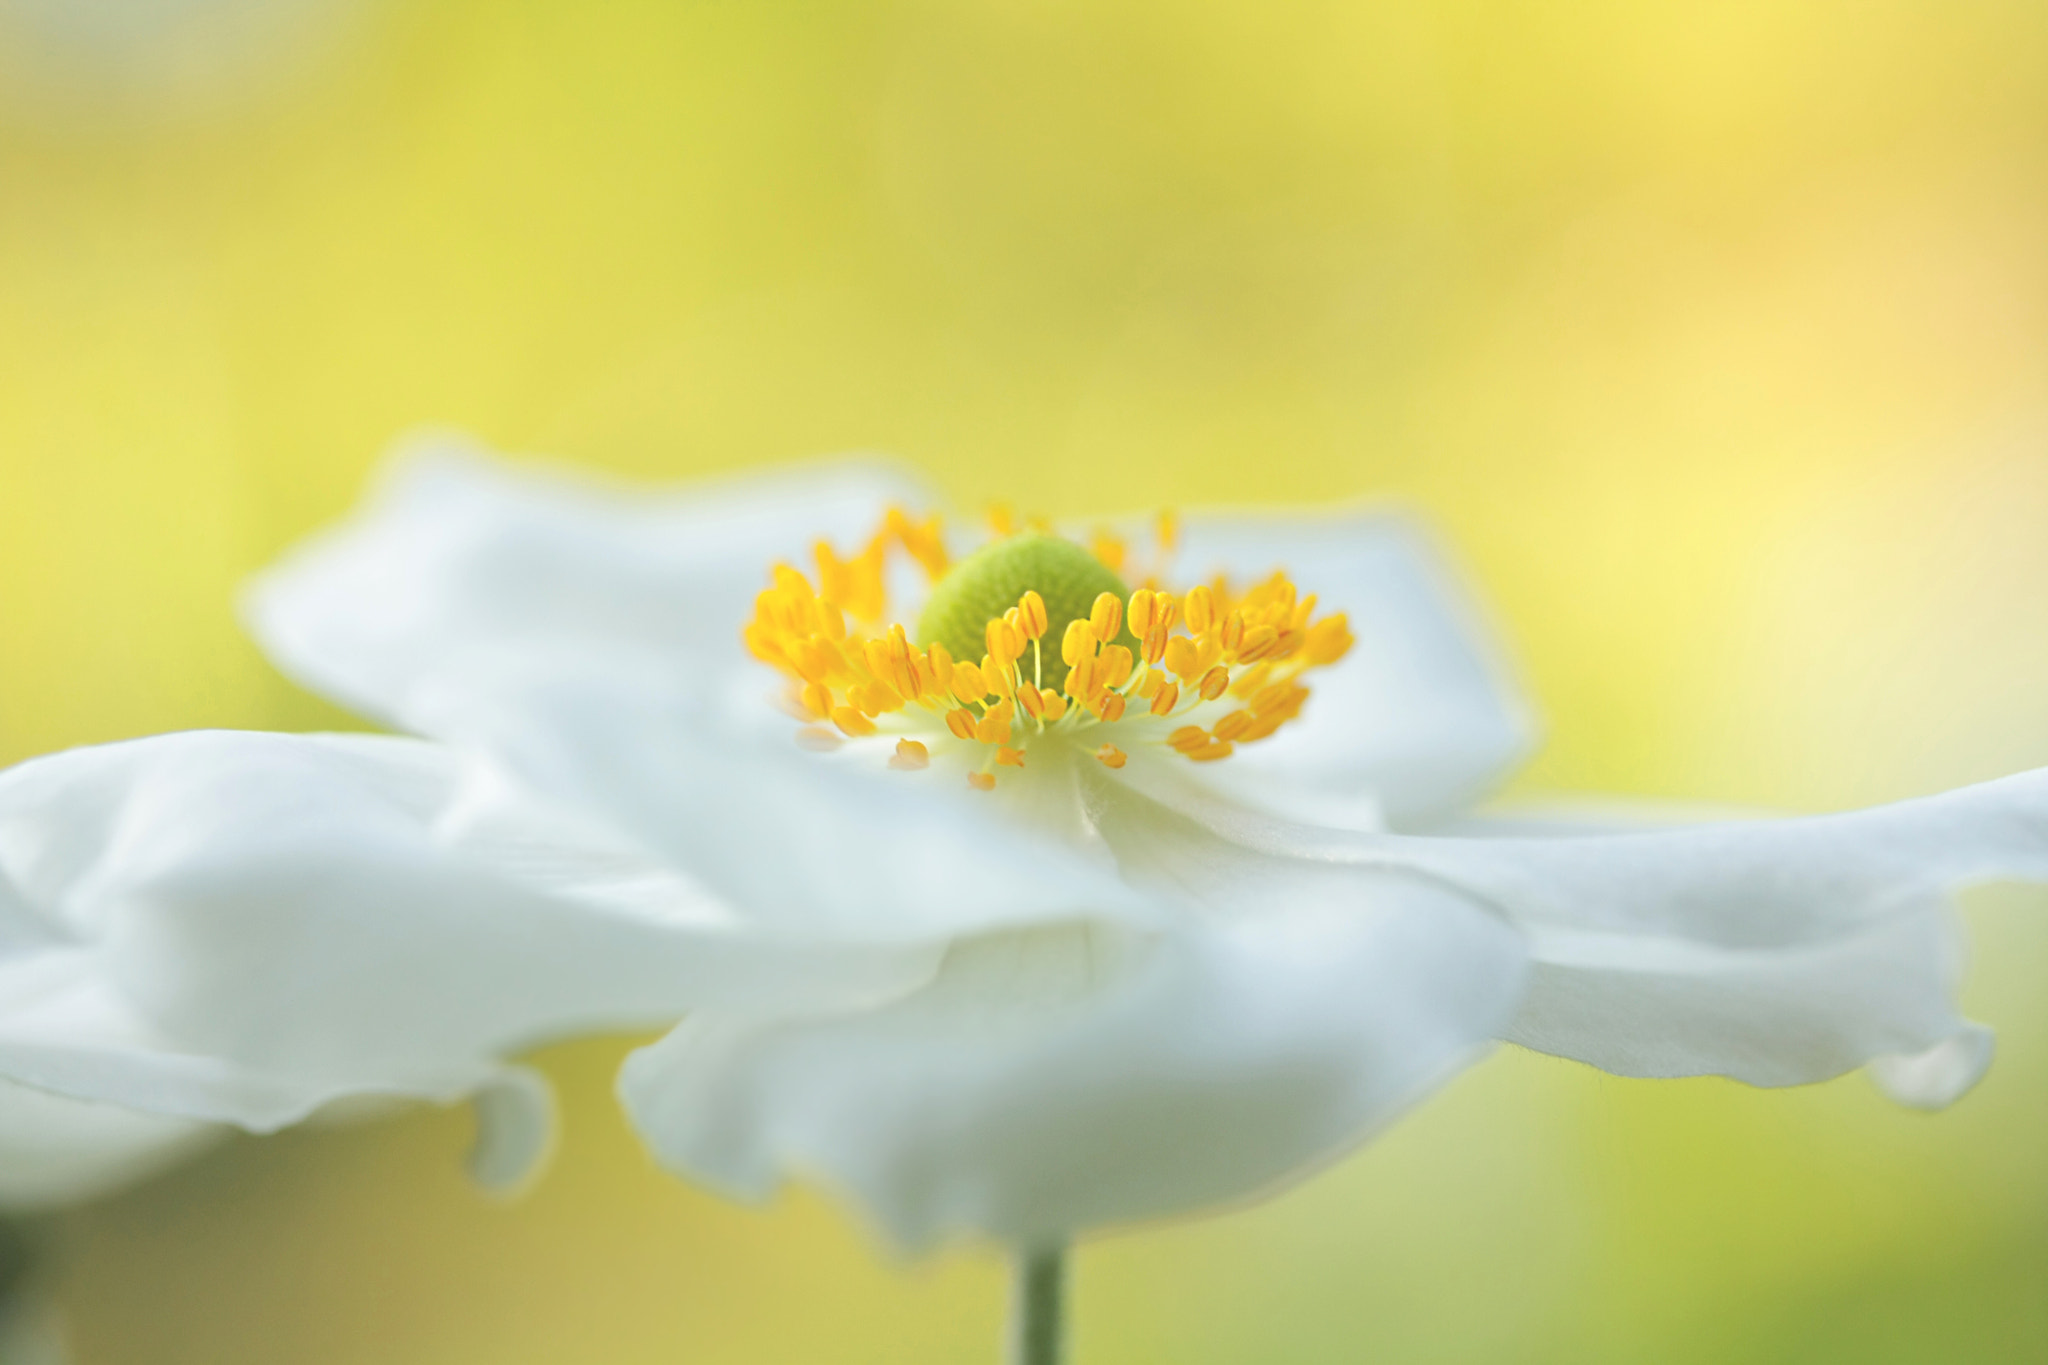 Photograph White Delicate Anemone by EWA CIEBIERA on 500px